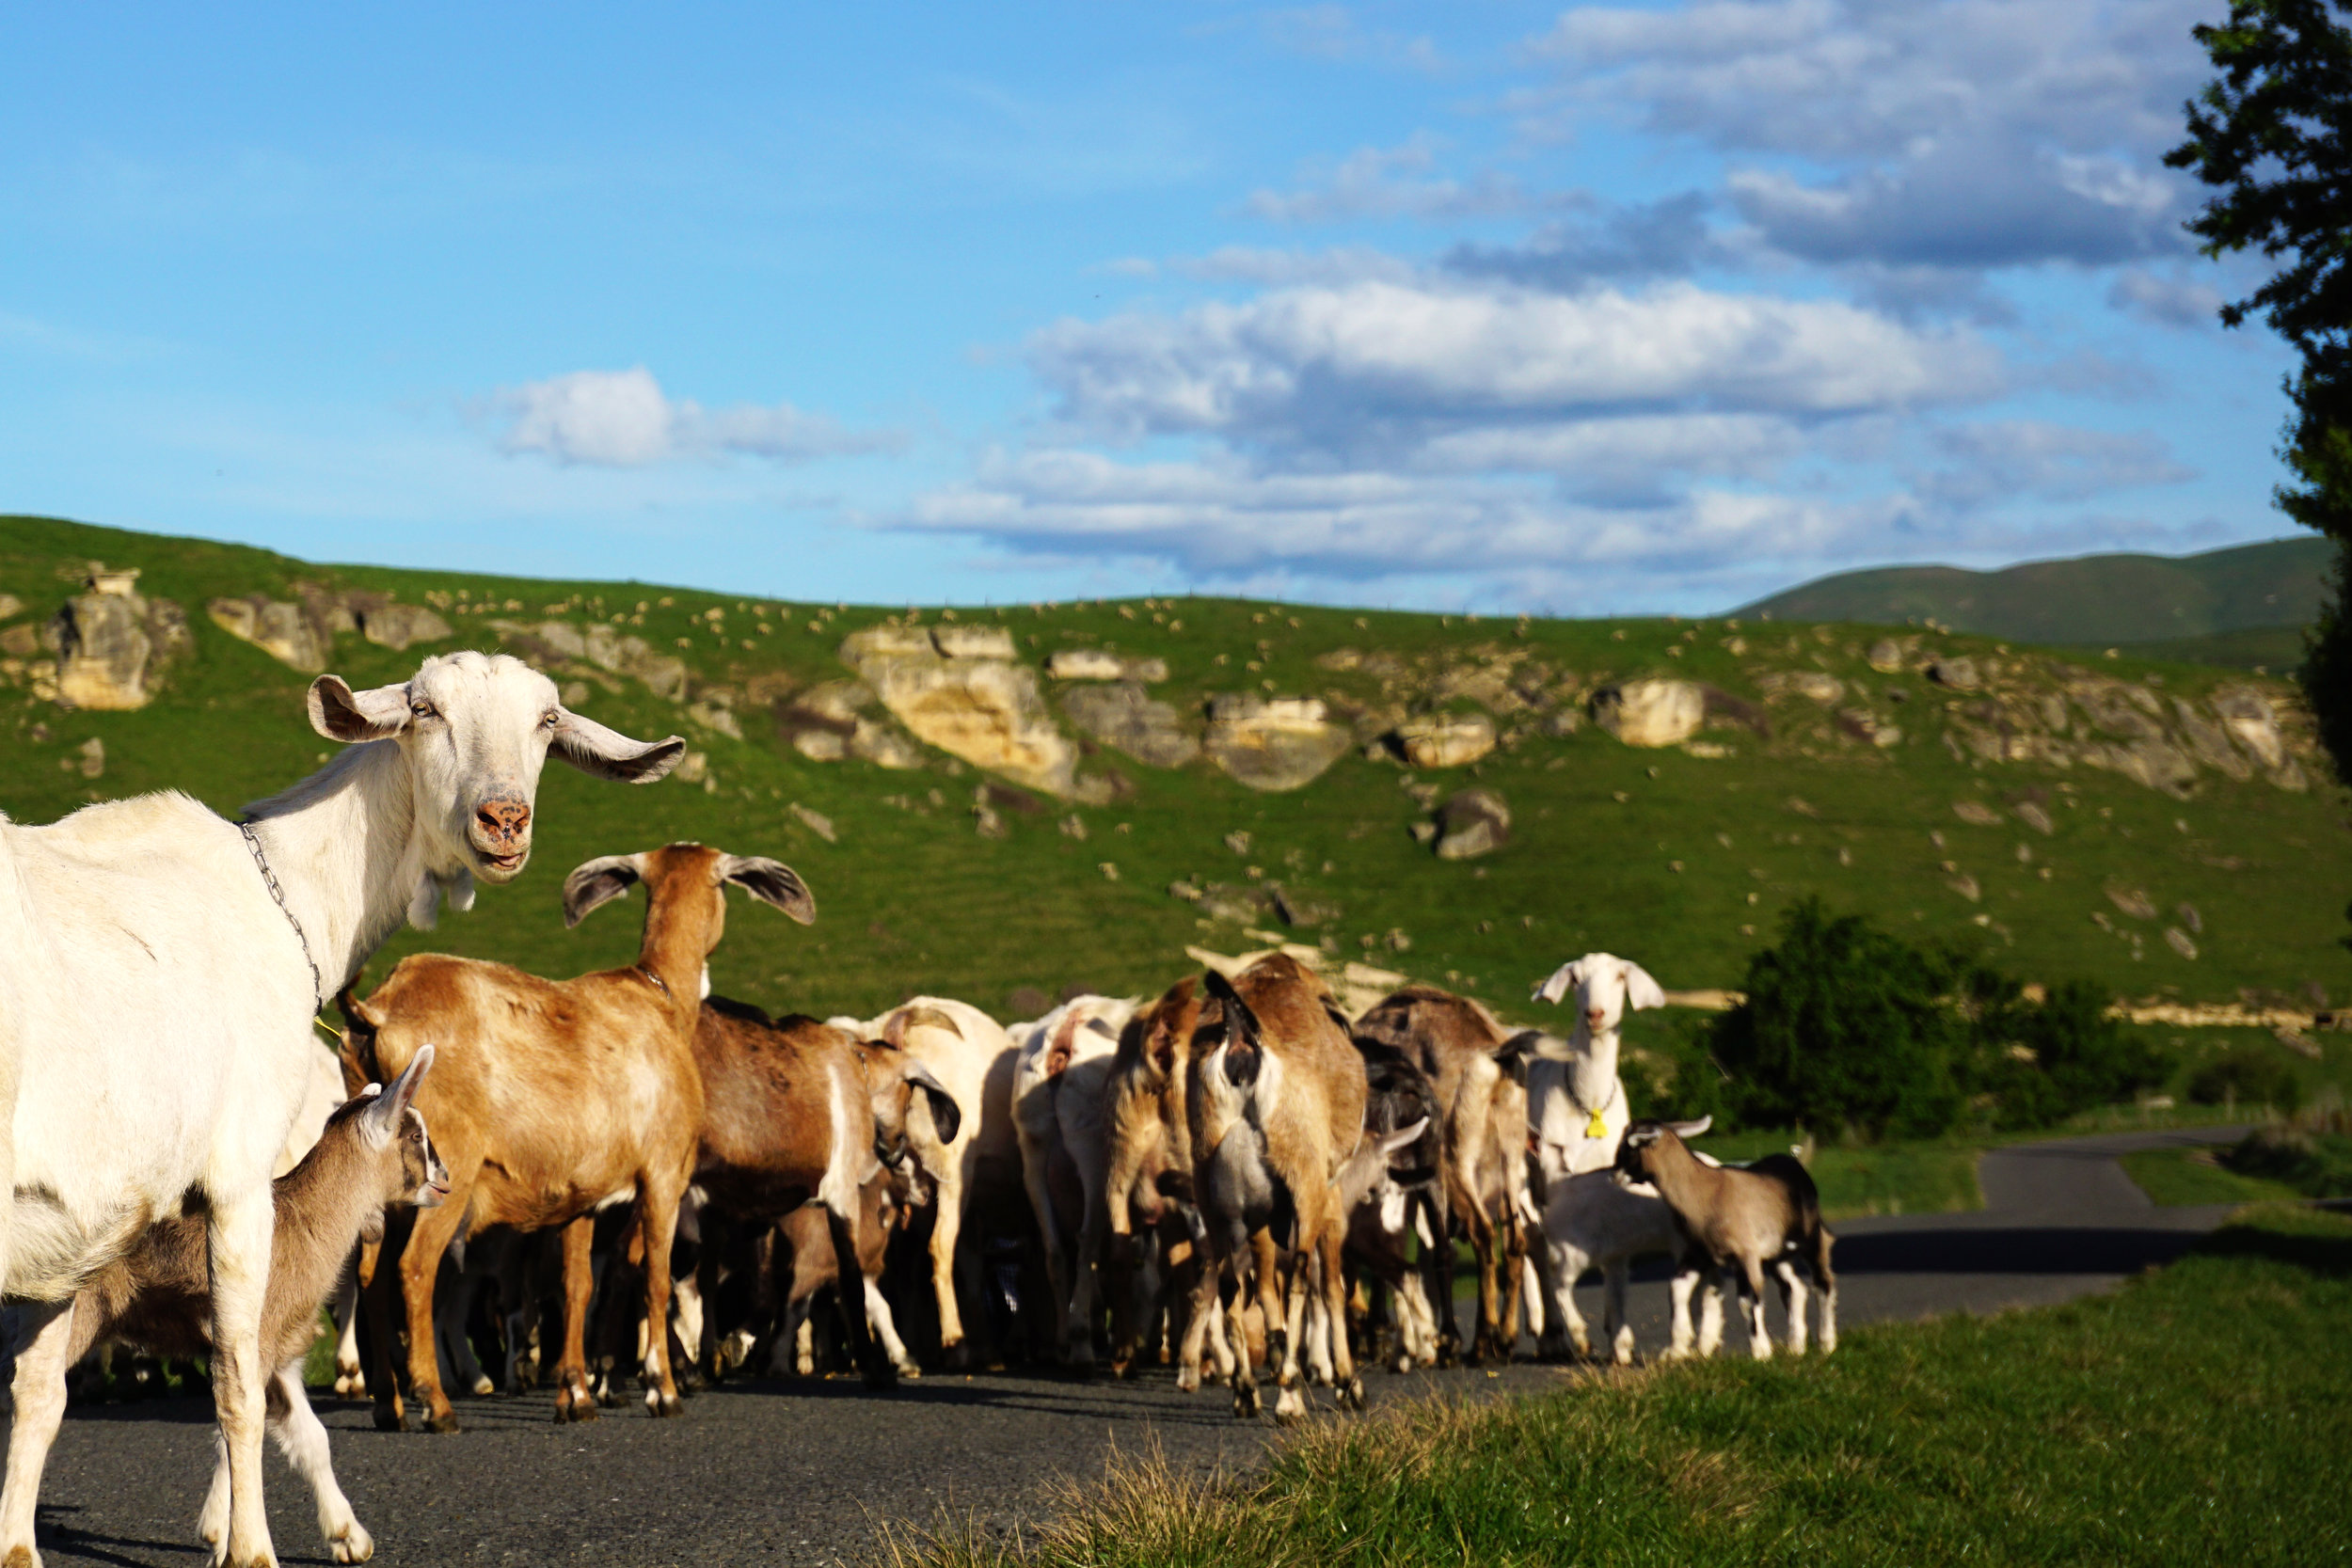 Meet the team - We know our goats by name